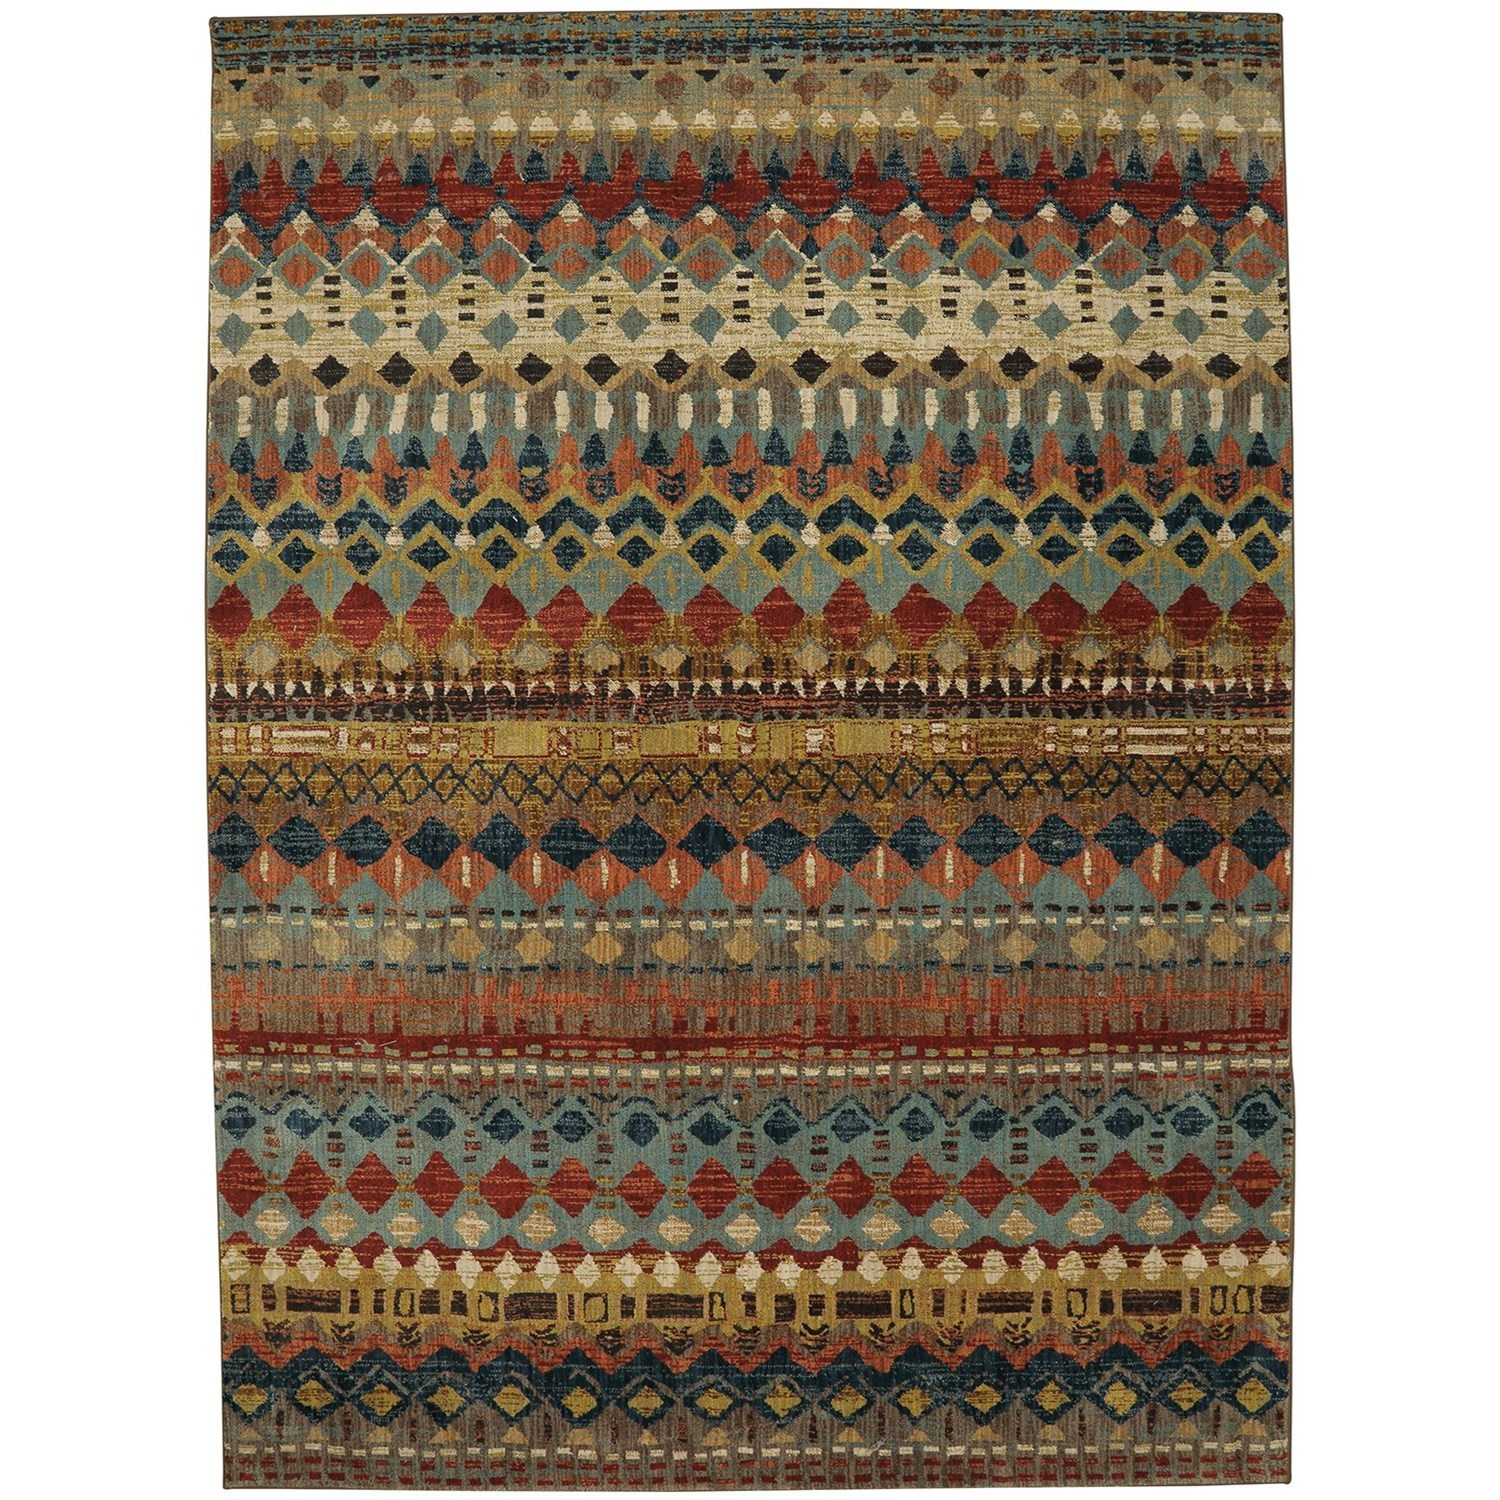 """Spice Market 9' 6""""x12' 11"""" Rectangle Geometric Area Rug by Karastan Rugs at Darvin Furniture"""